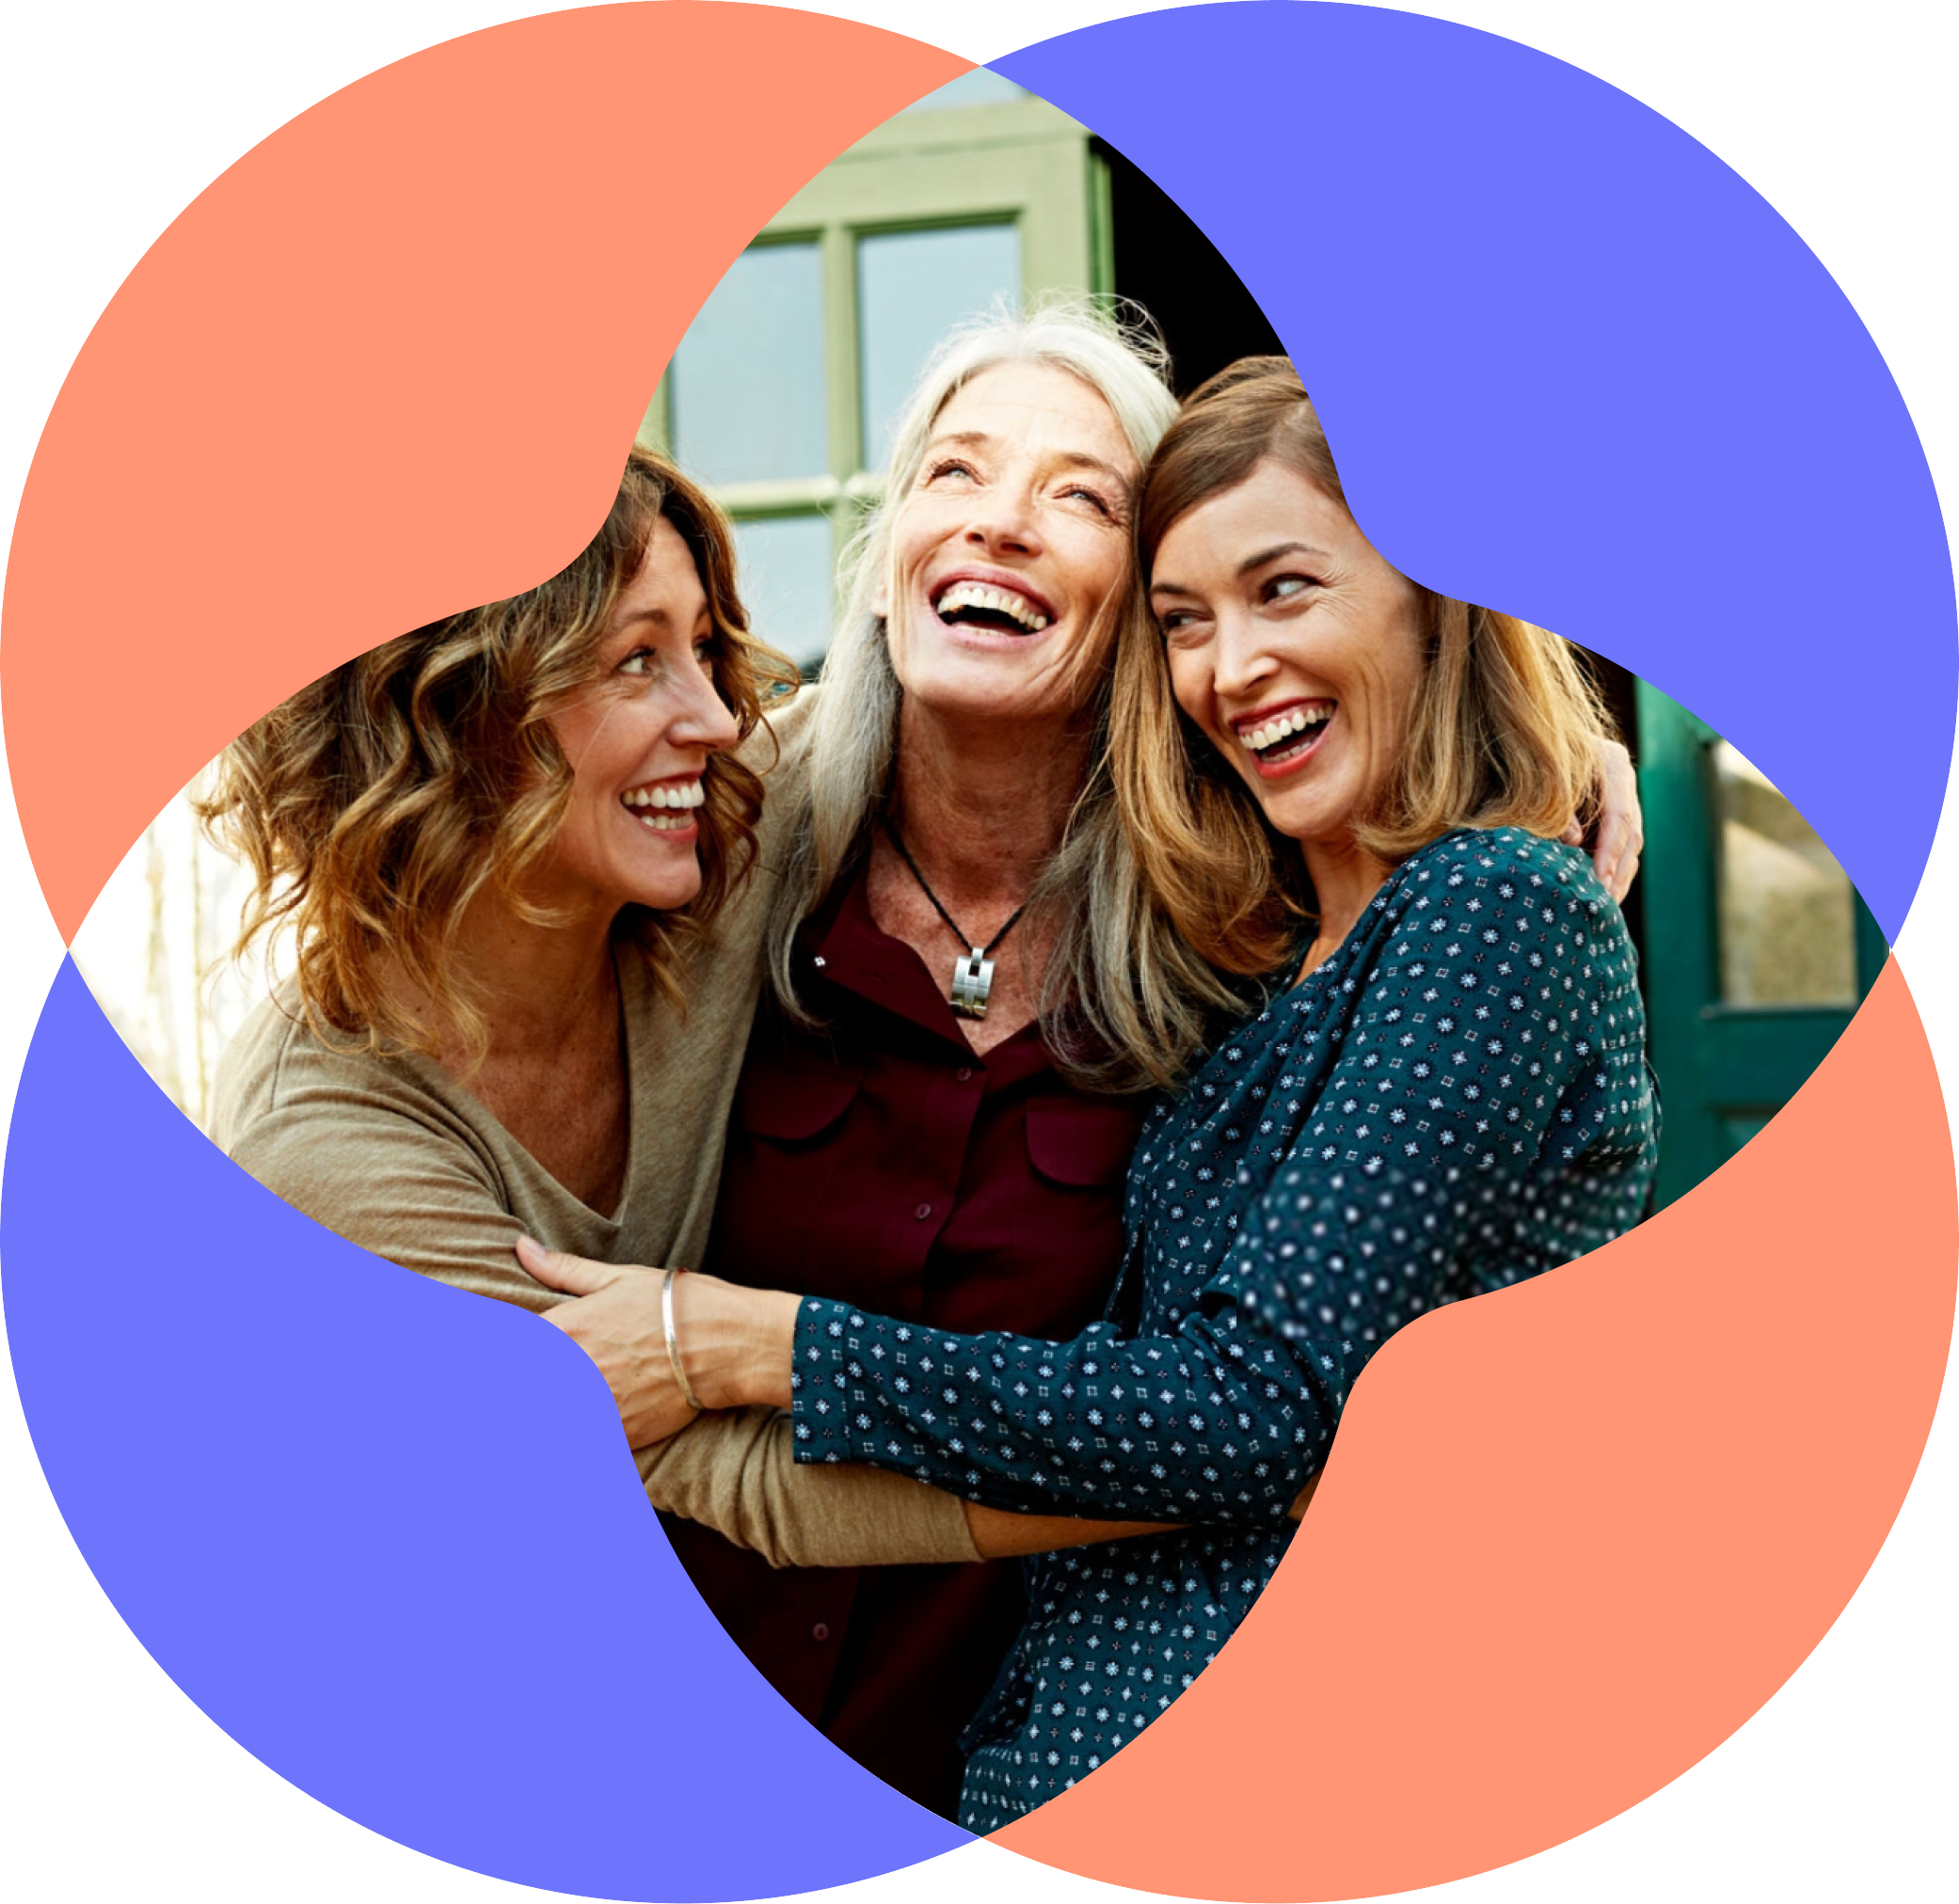 Three women of menopause age embracing and smiling